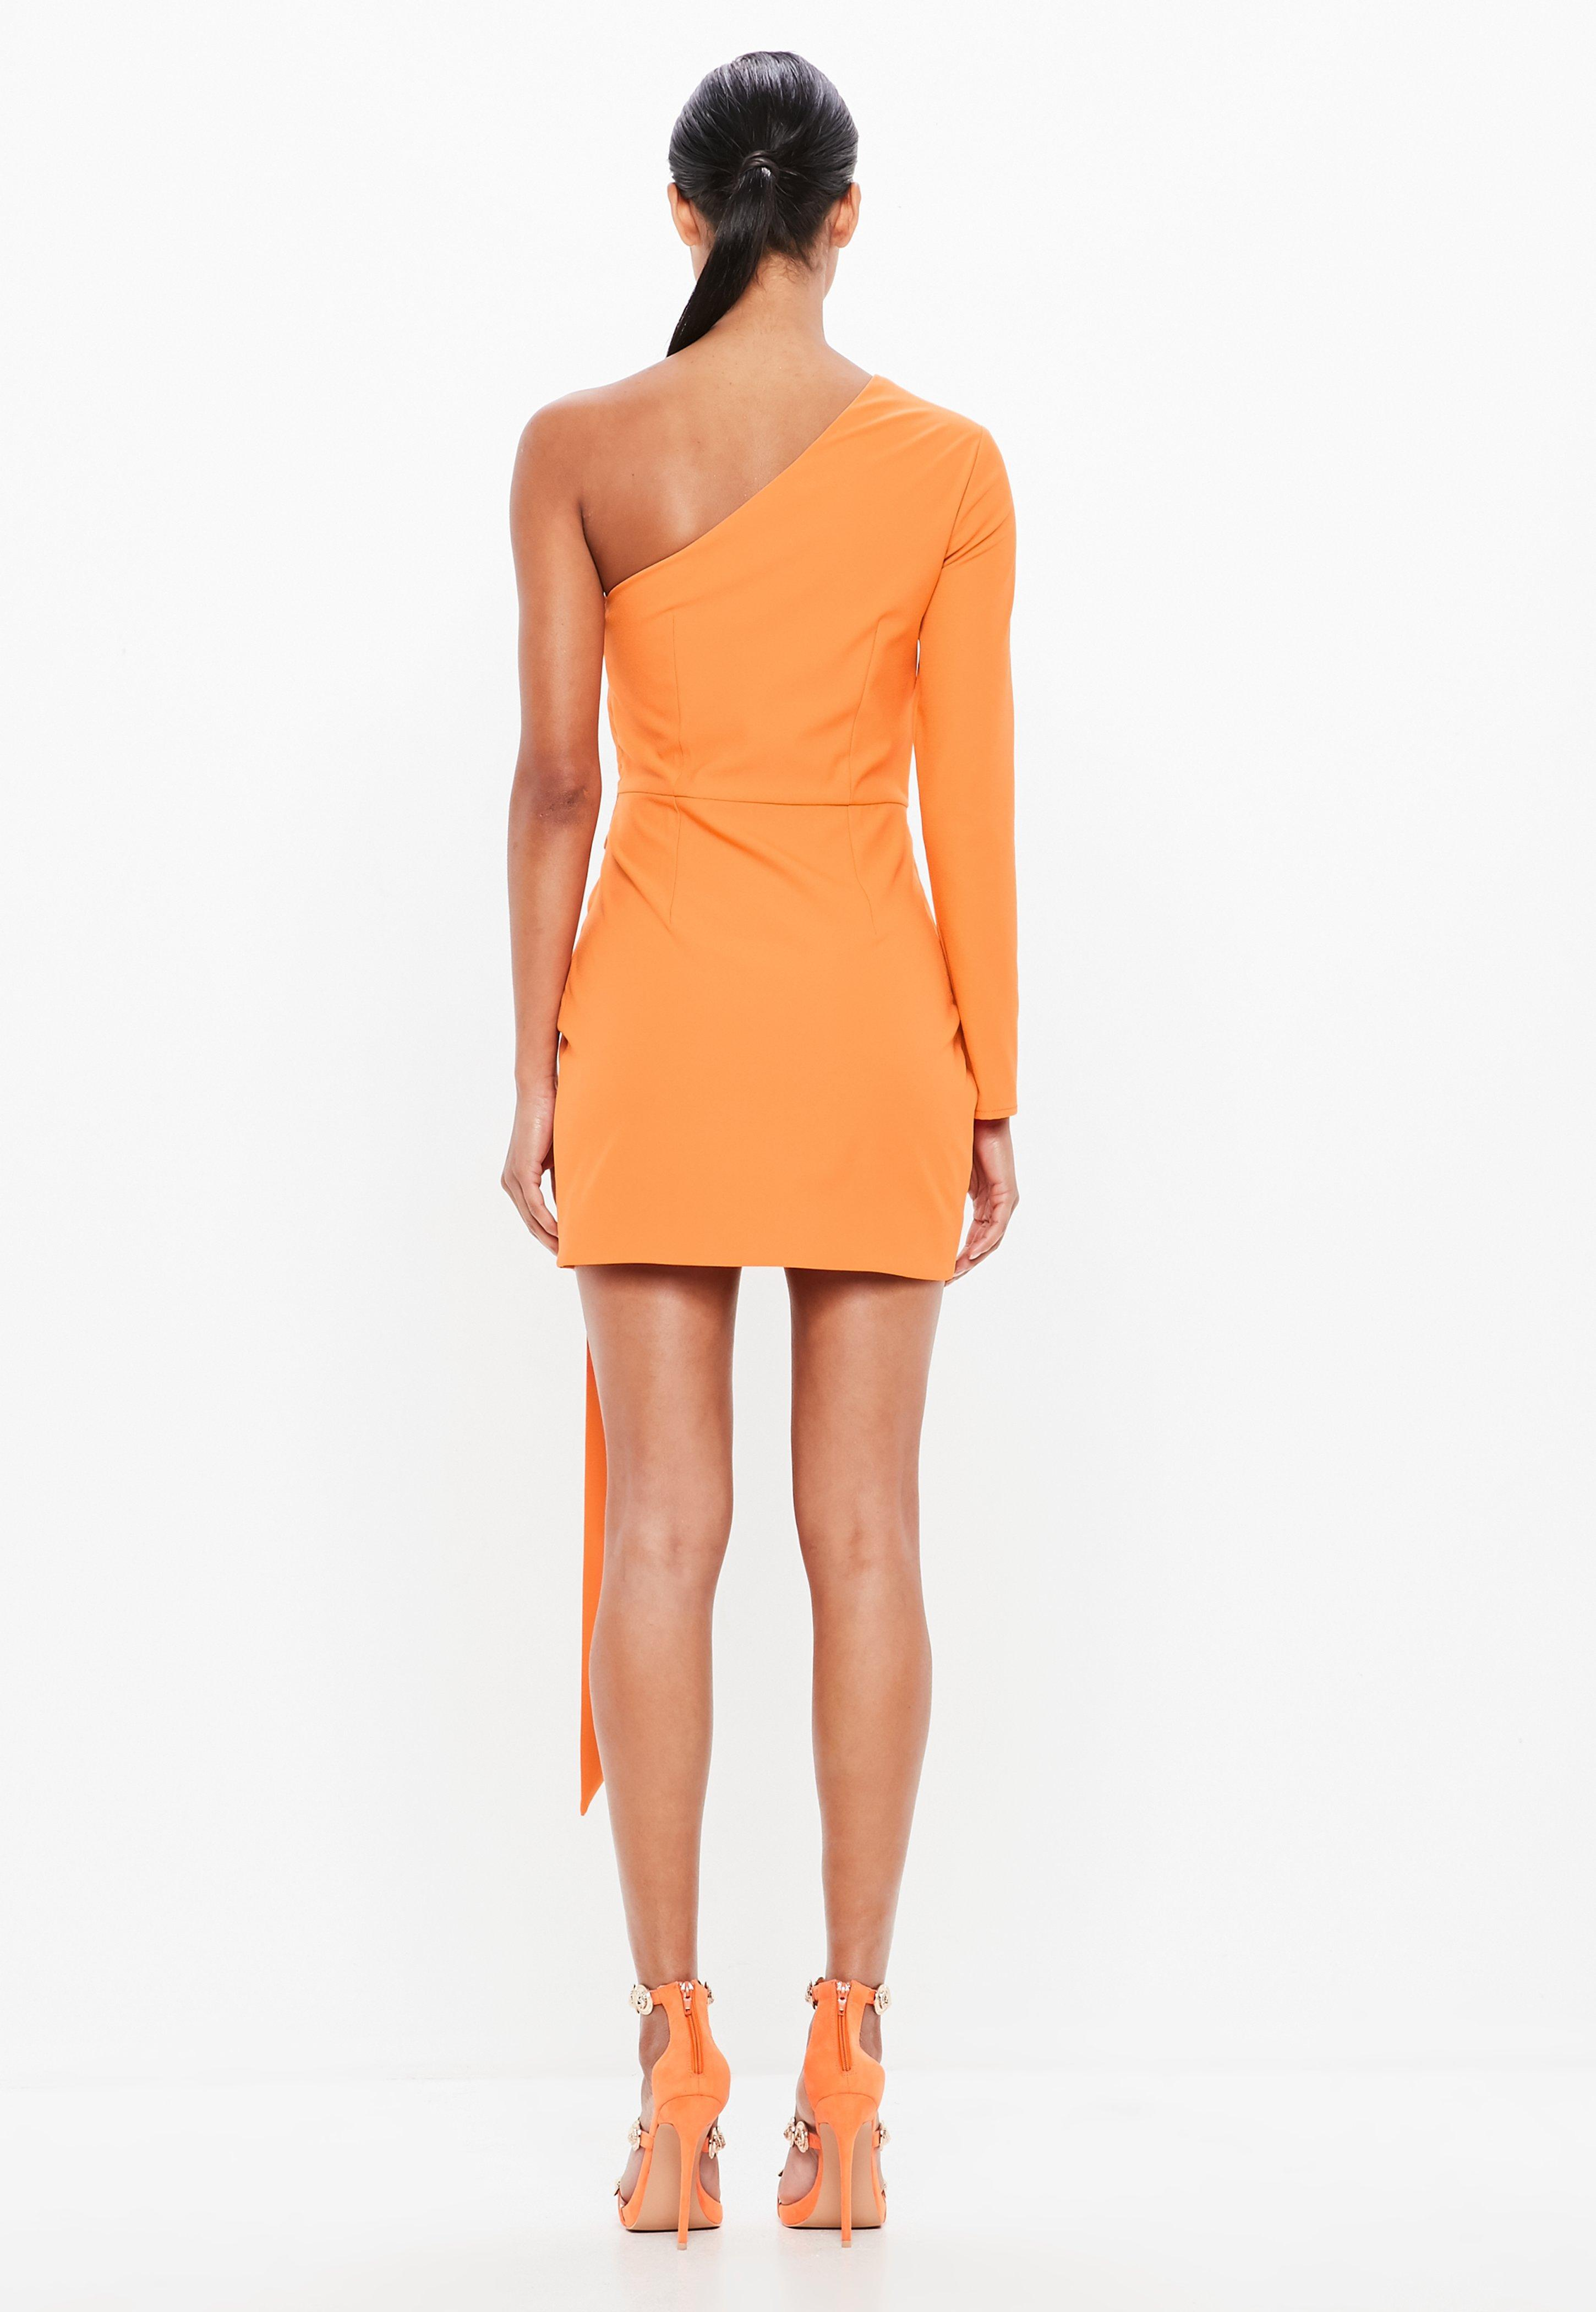 ef044f6626af Lyst - Missguided Peace + Love Orange One Shoulder Wrap Mini Dress ...